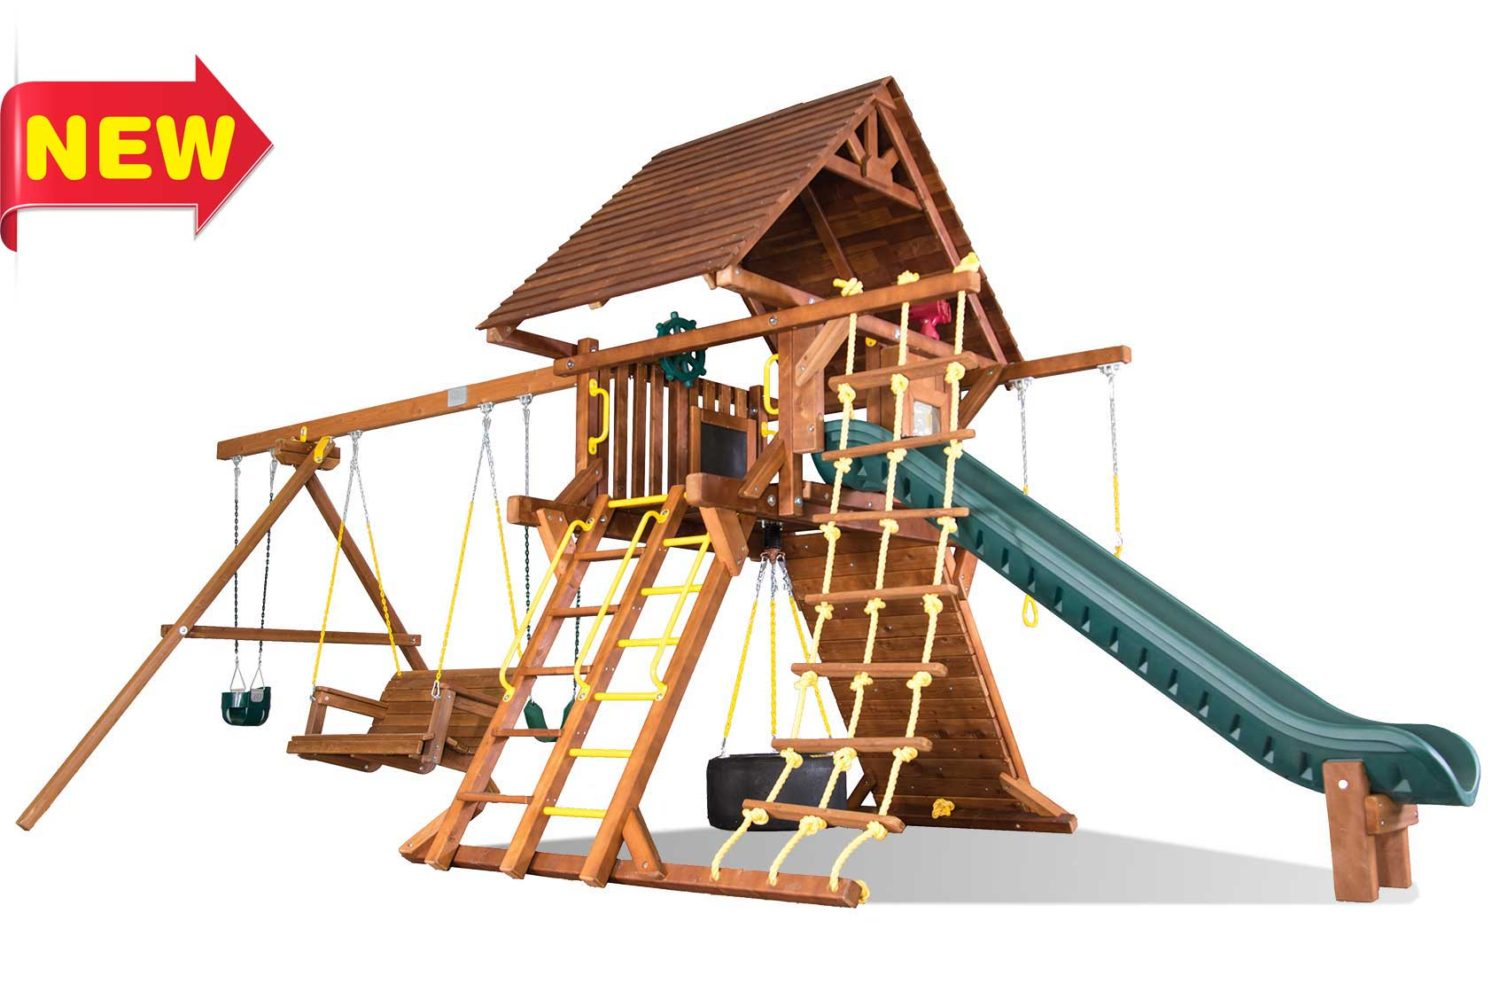 Sunshine Super Turbo Castle Pkg II Wooden Swing Sets